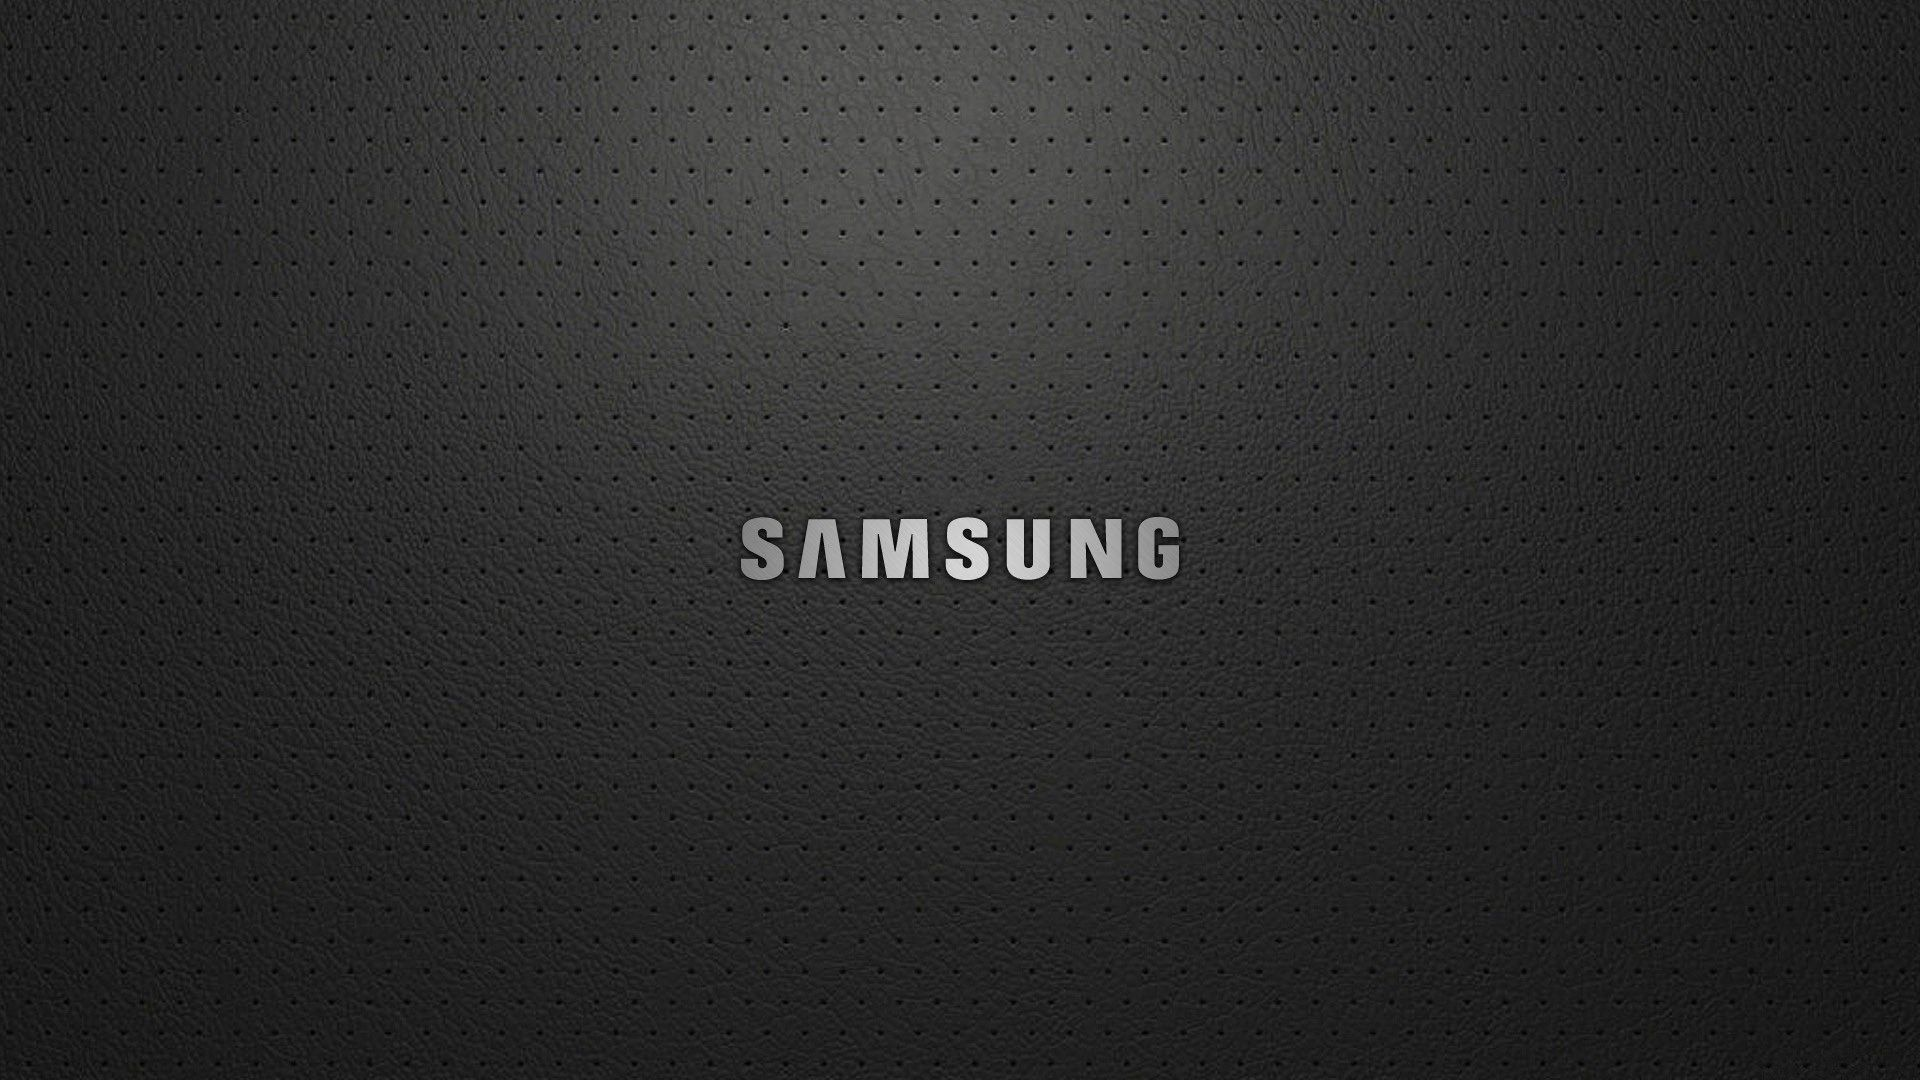 Samsung Logo High Resolution Wallpapers With Images Samsung